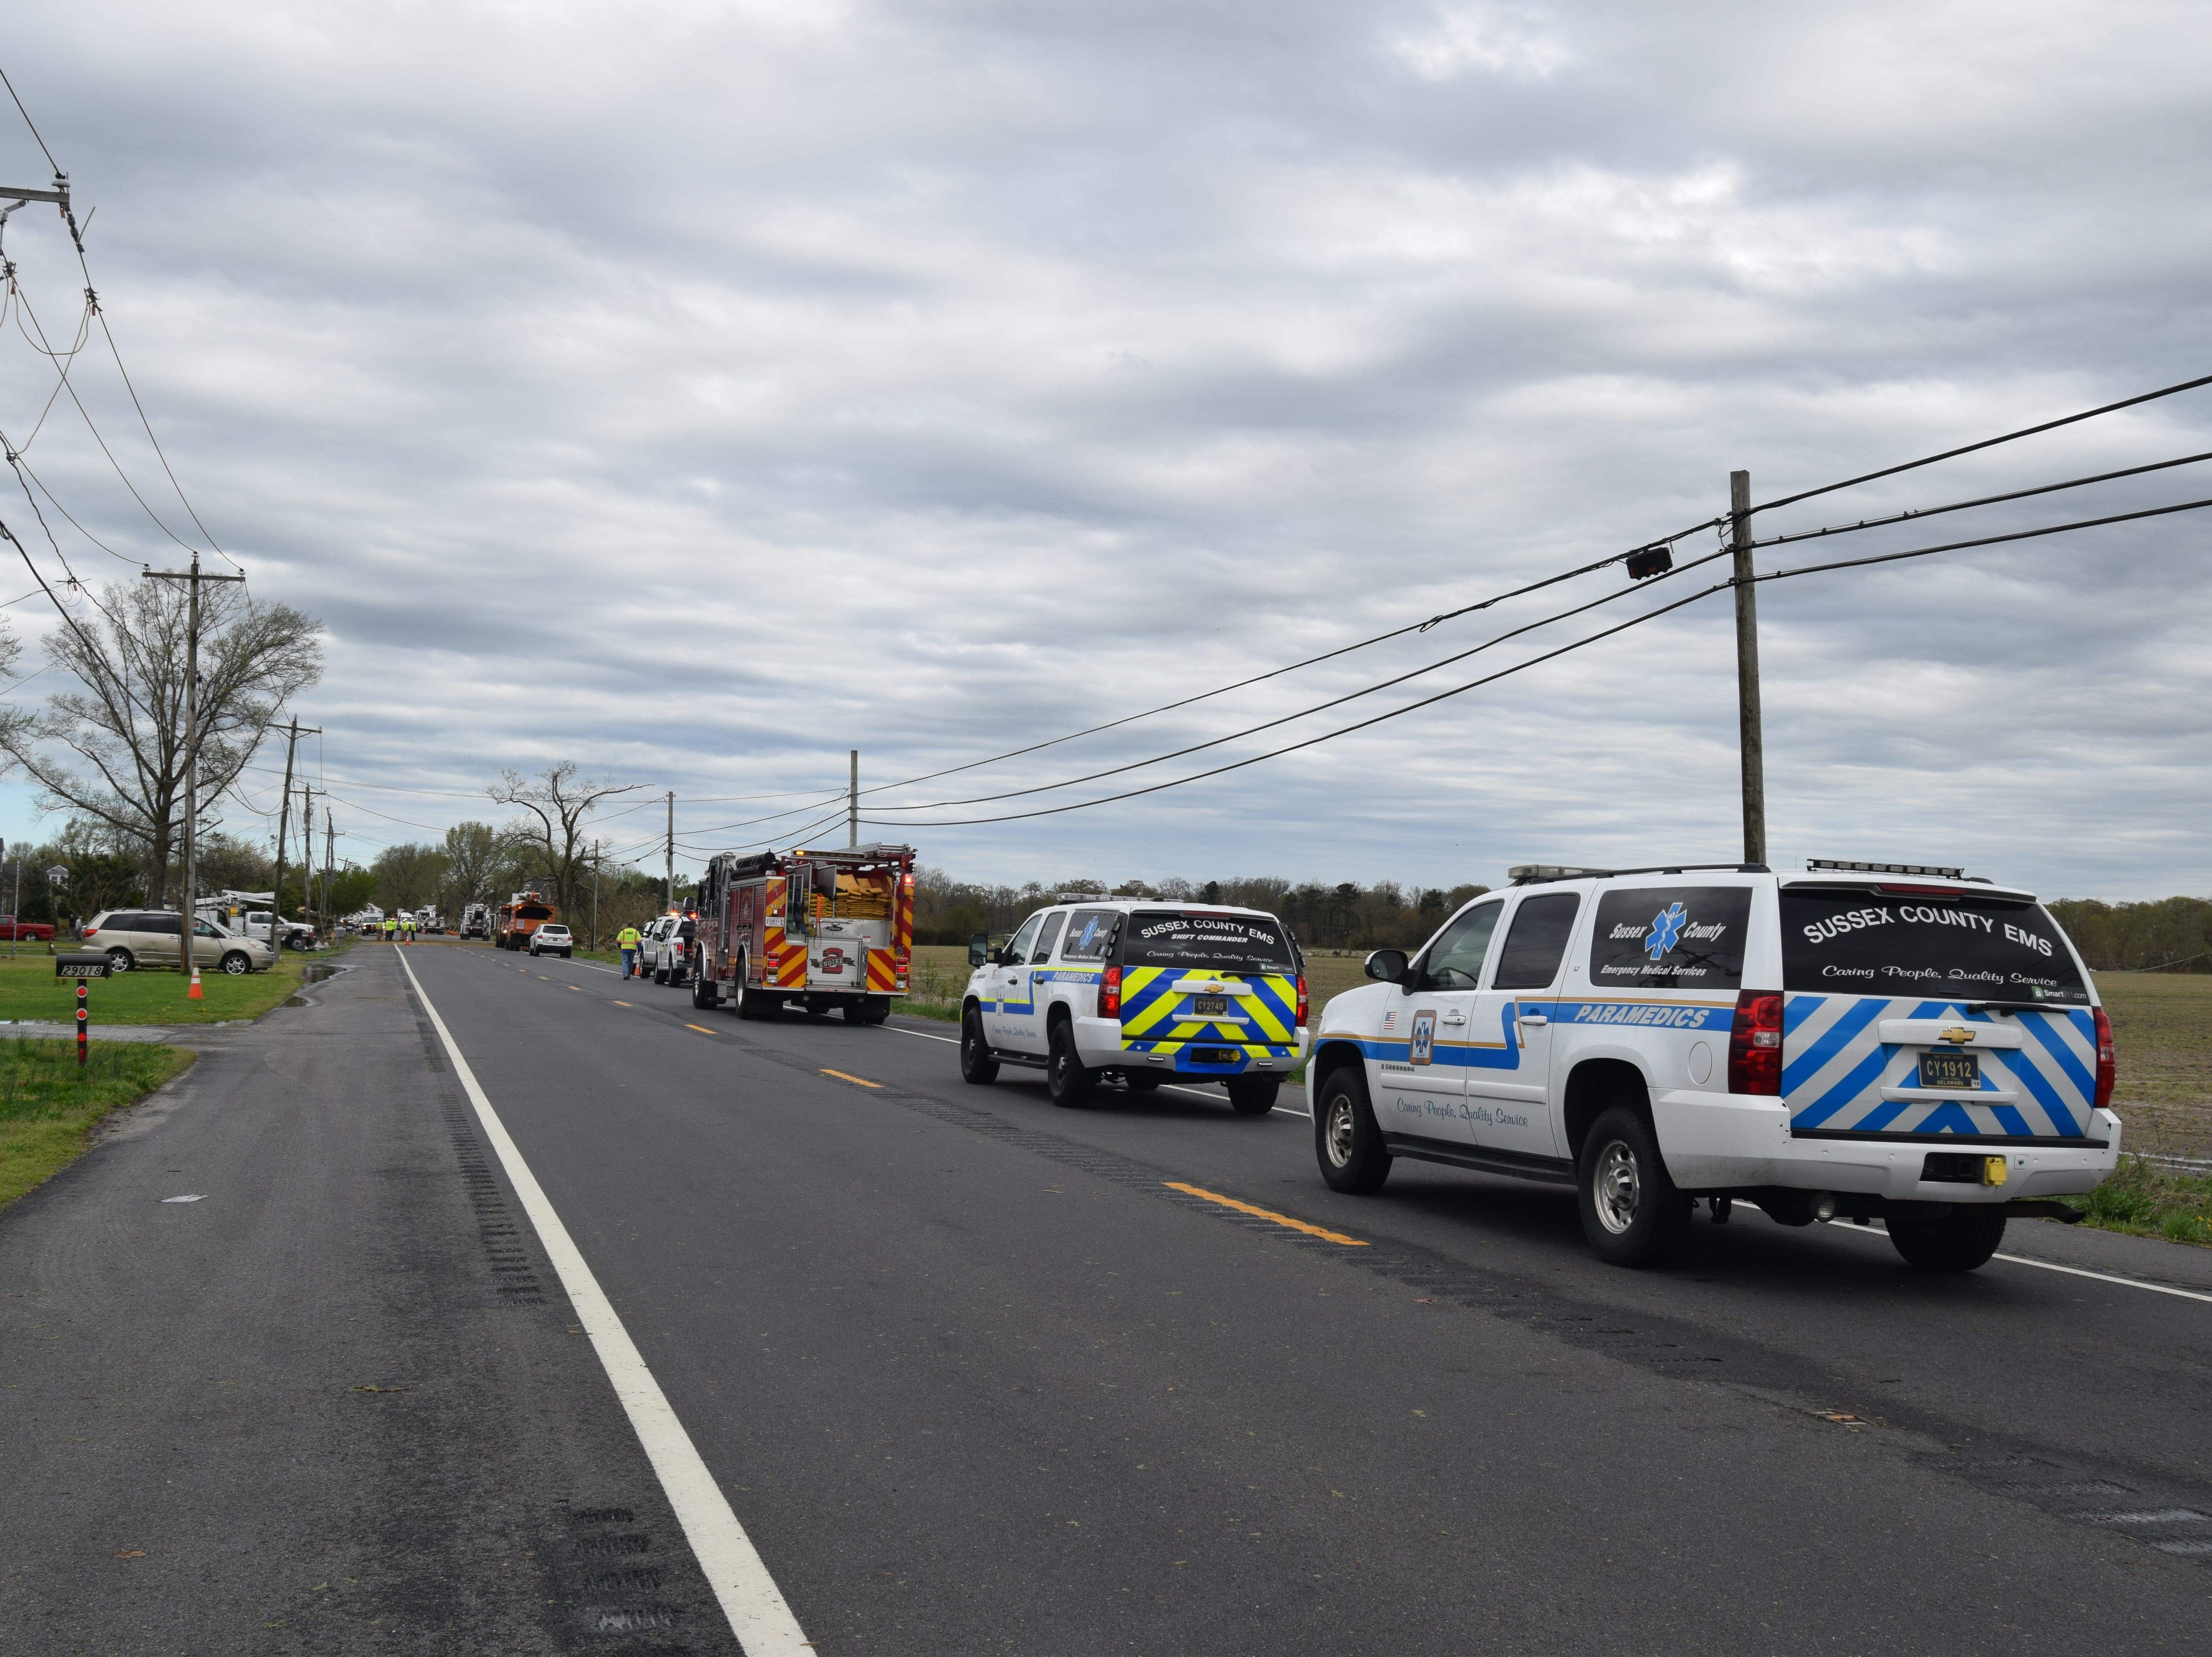 Some roads in the Laurel area remained closed hours after a storm swept through the area overnight. Here, Seaford Road is blocked by emergency crews who said that area was among the hardest hit.